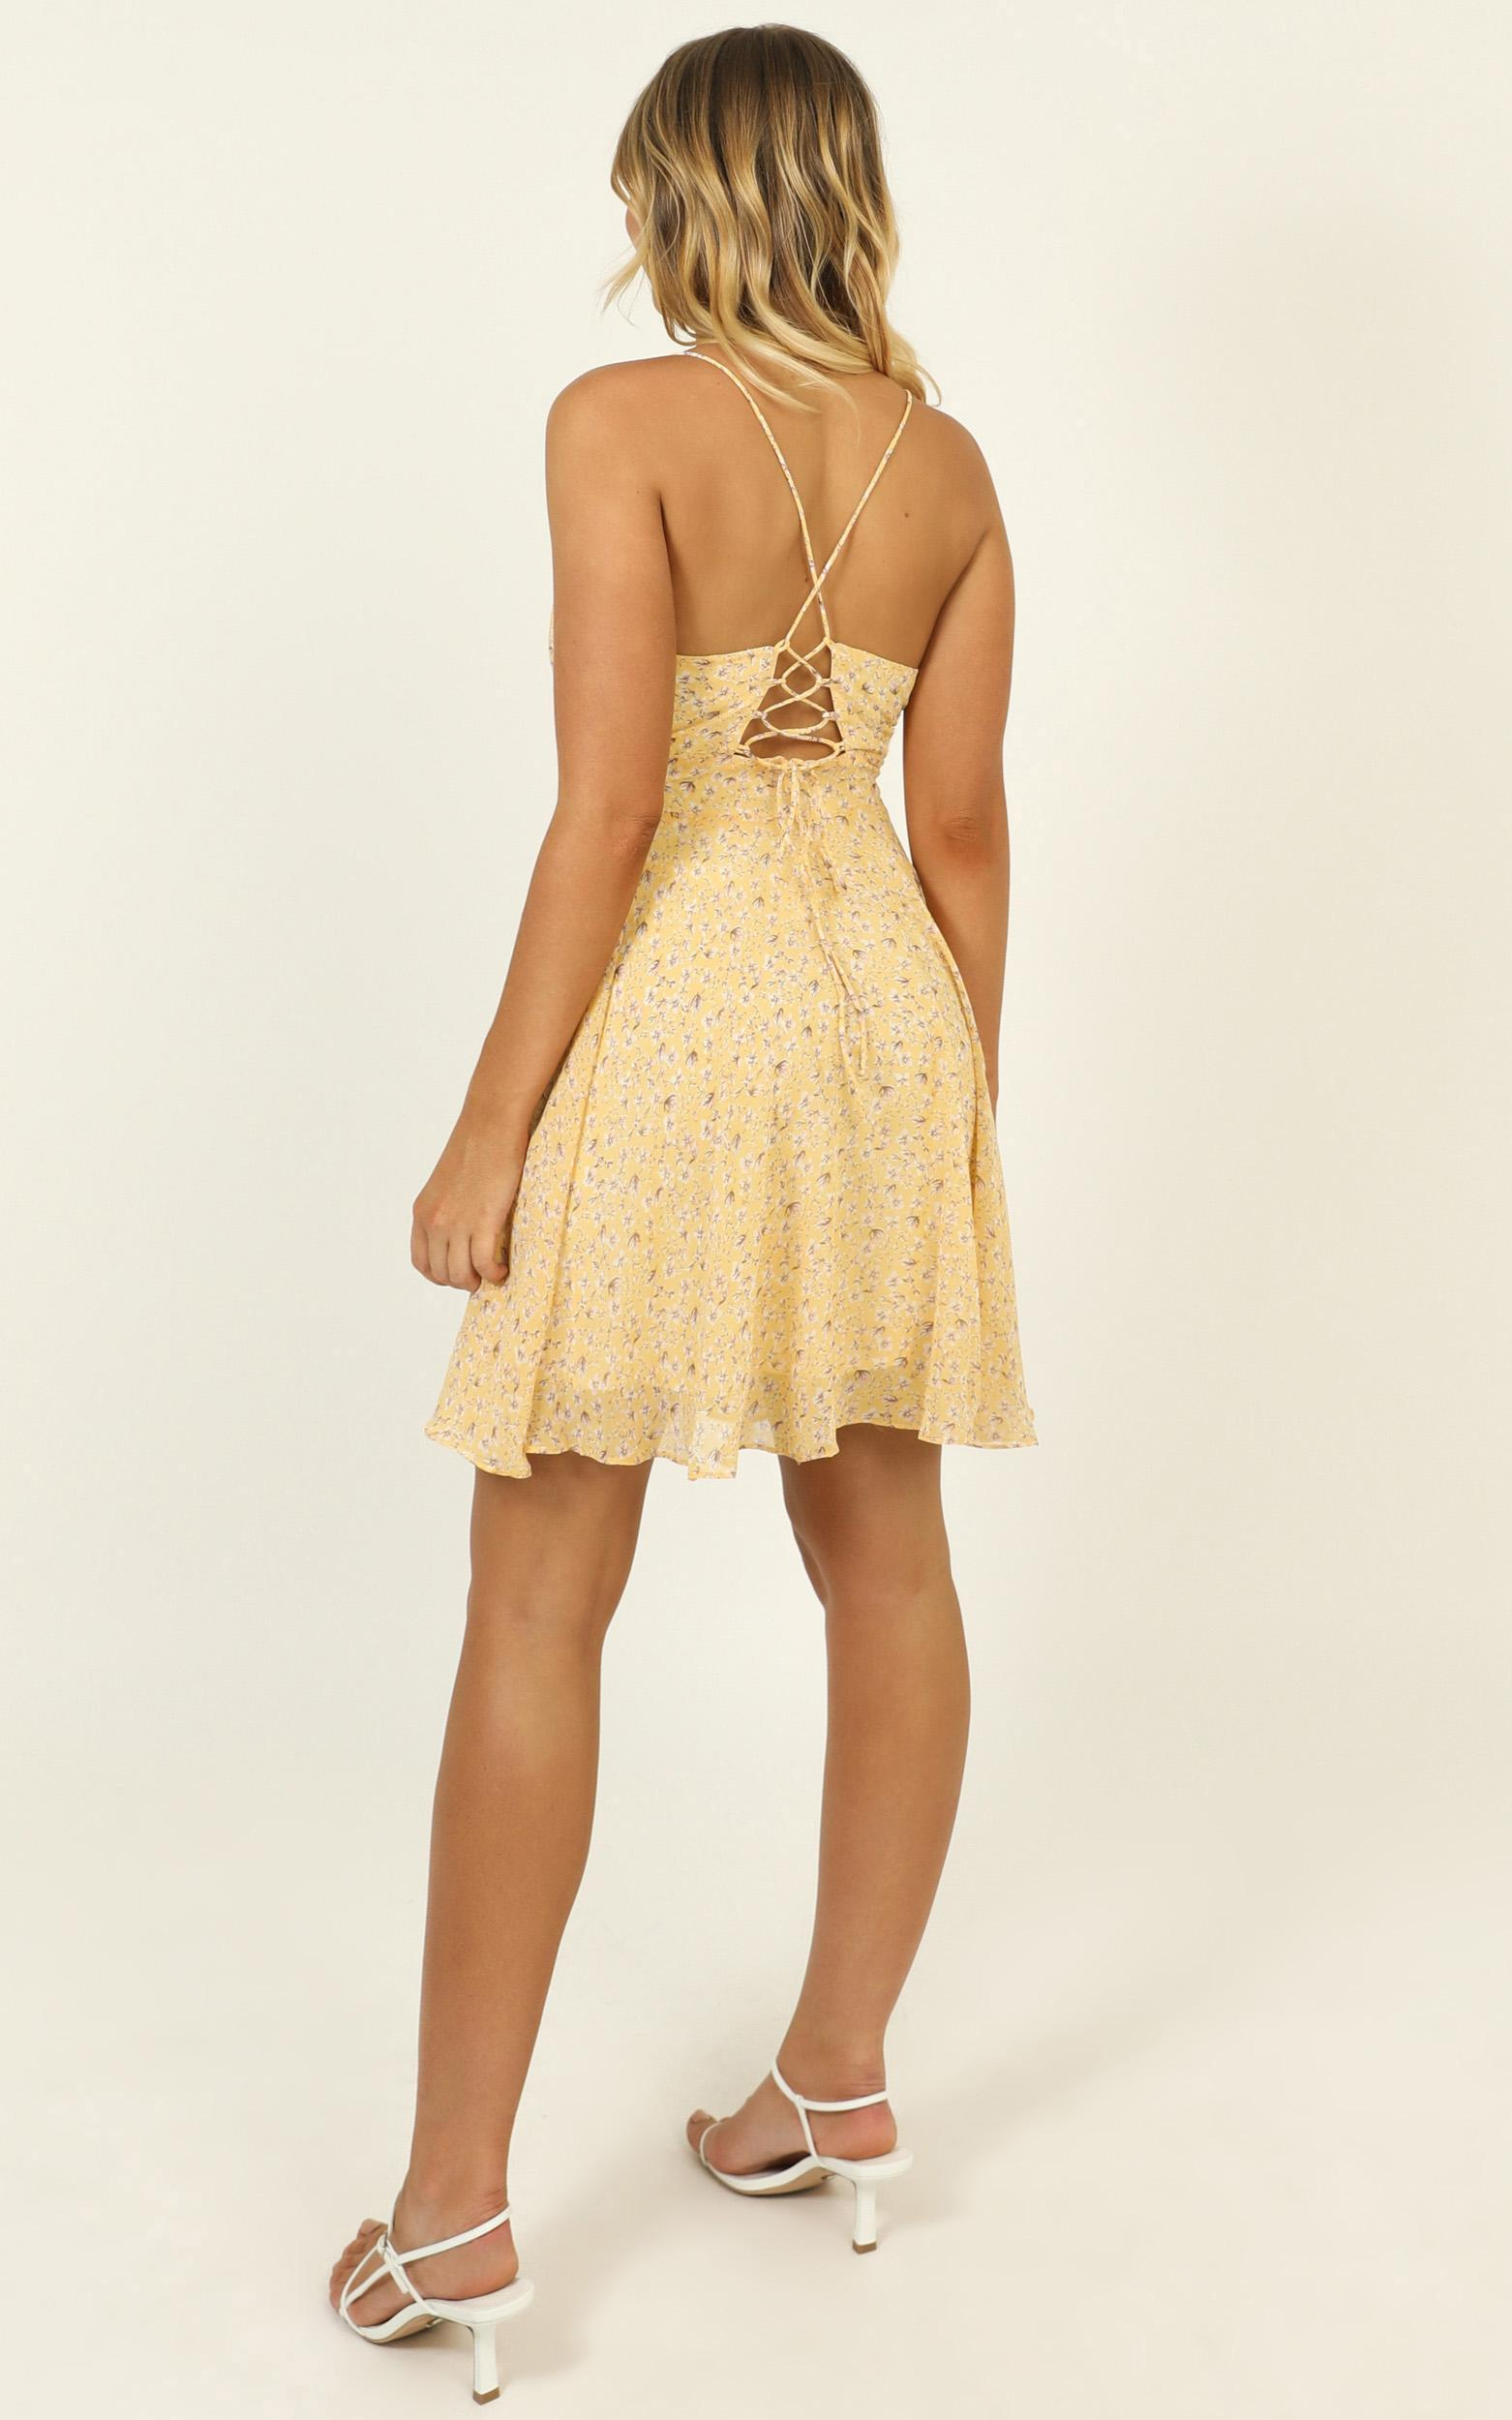 Busy Day dress in yellow floral - 16 (XXL), Yellow, hi-res image number null